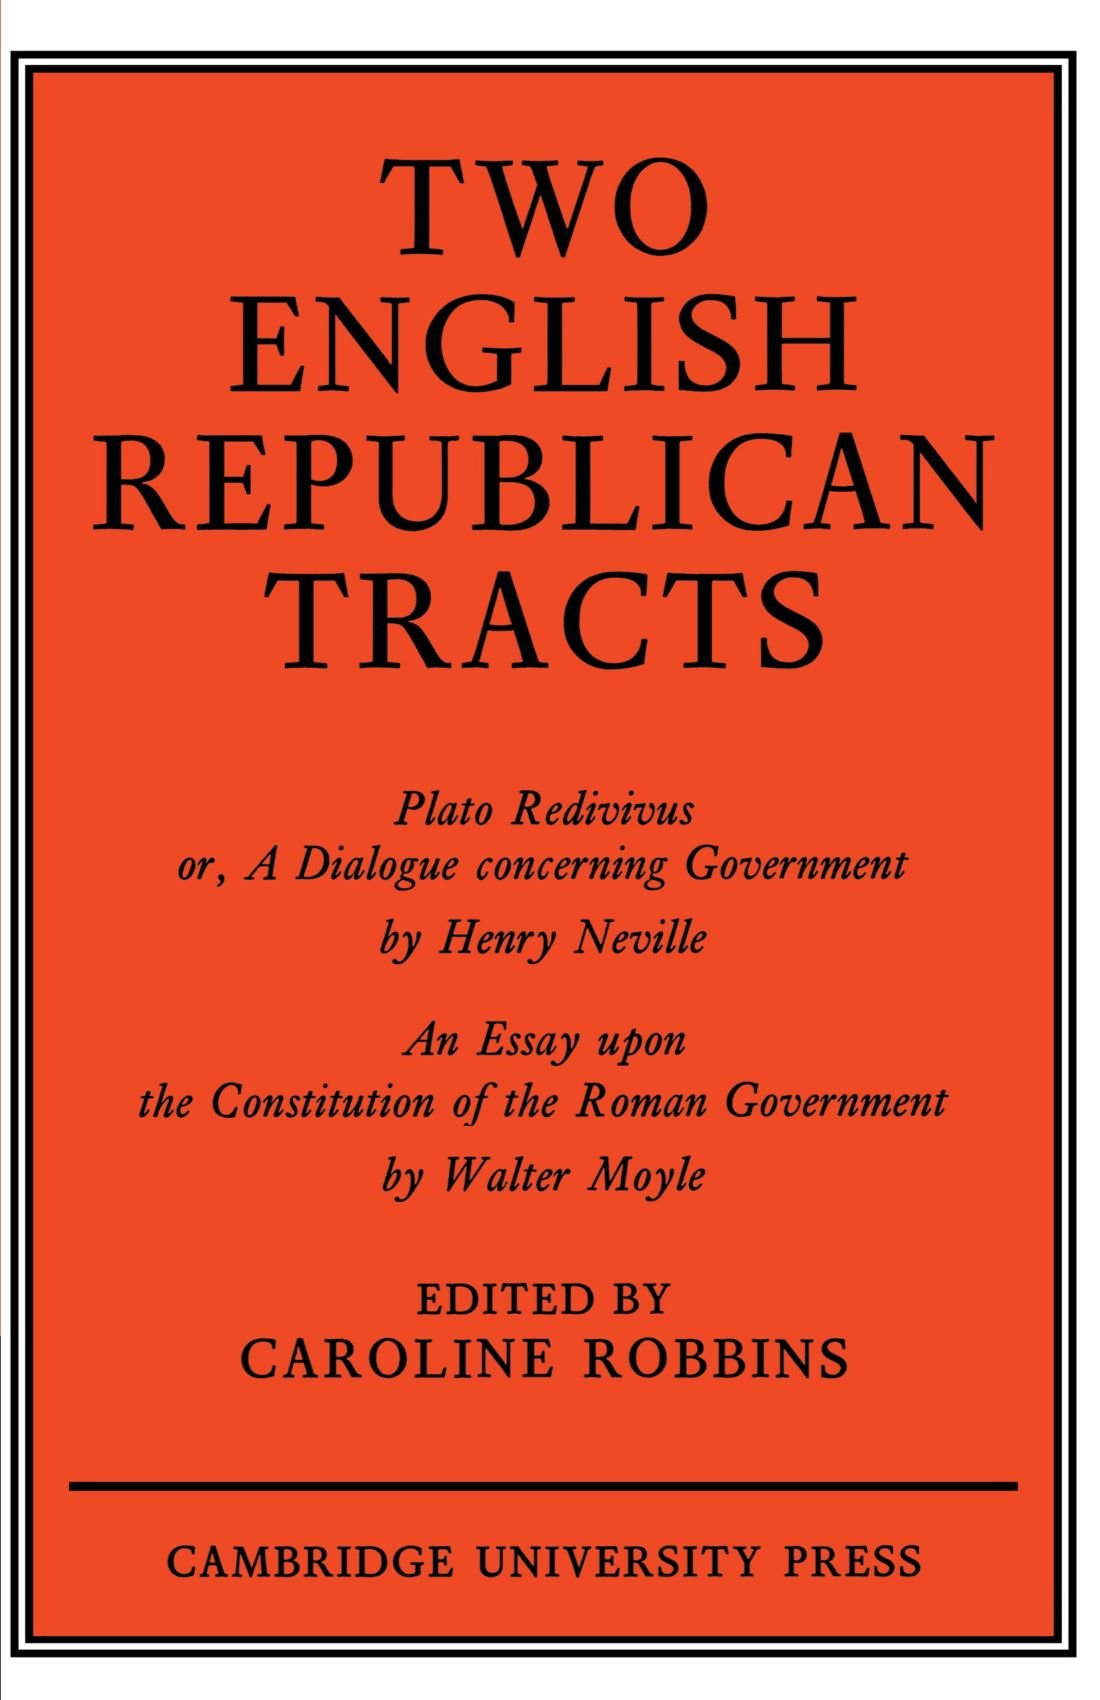 Two english republican tracts robbins 9780521147484 amazon books stopboris Choice Image